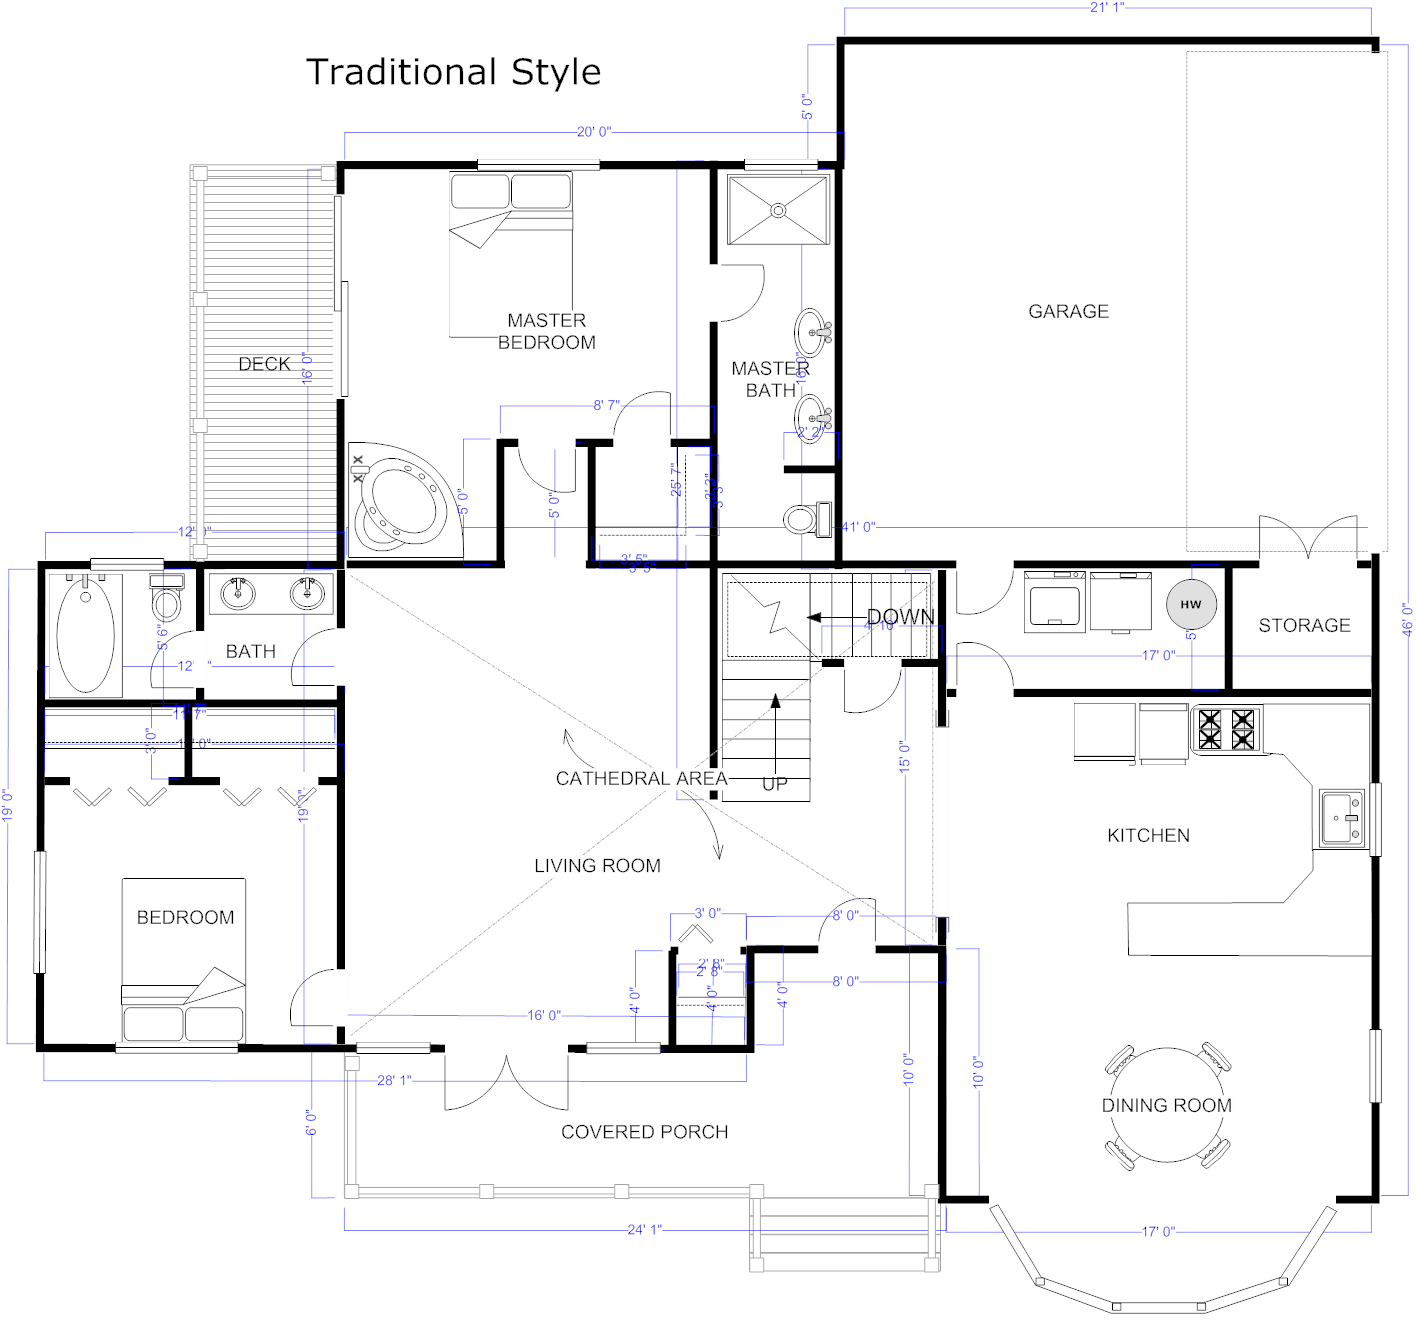 Architecture Design Your Own House architecture software | free download & online app